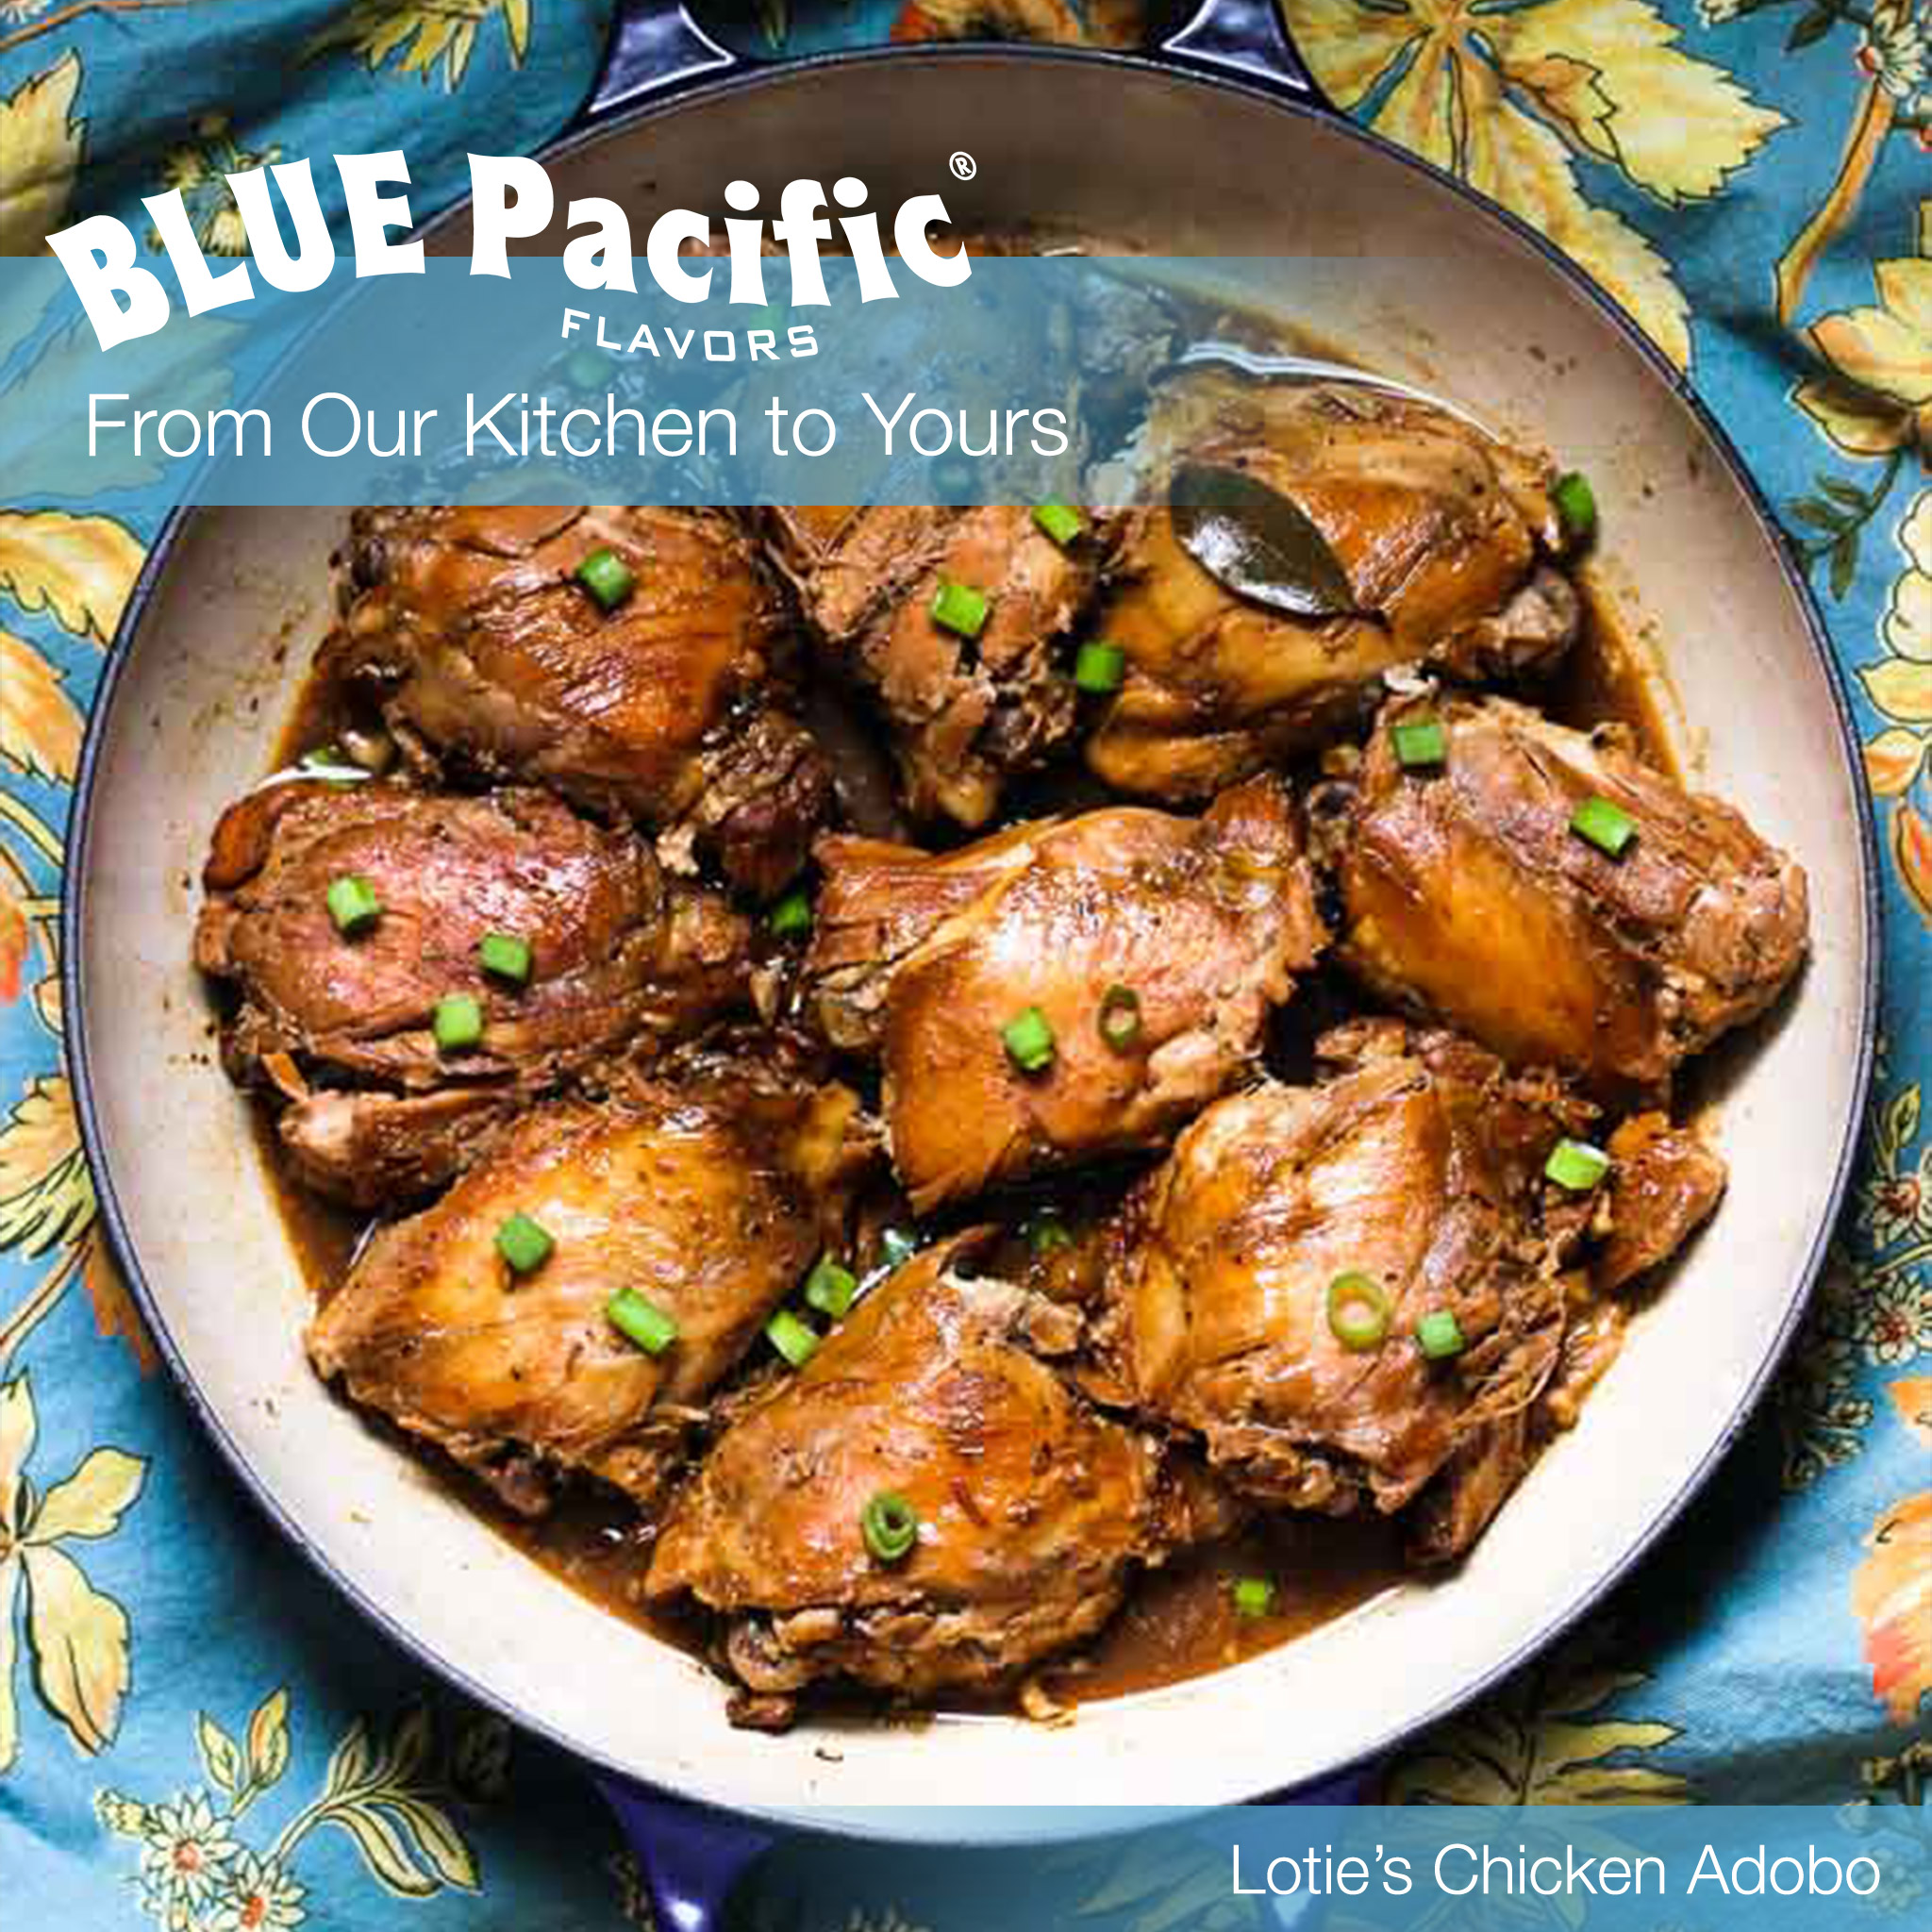 Chicken Adobo Kitchen Of Bpf